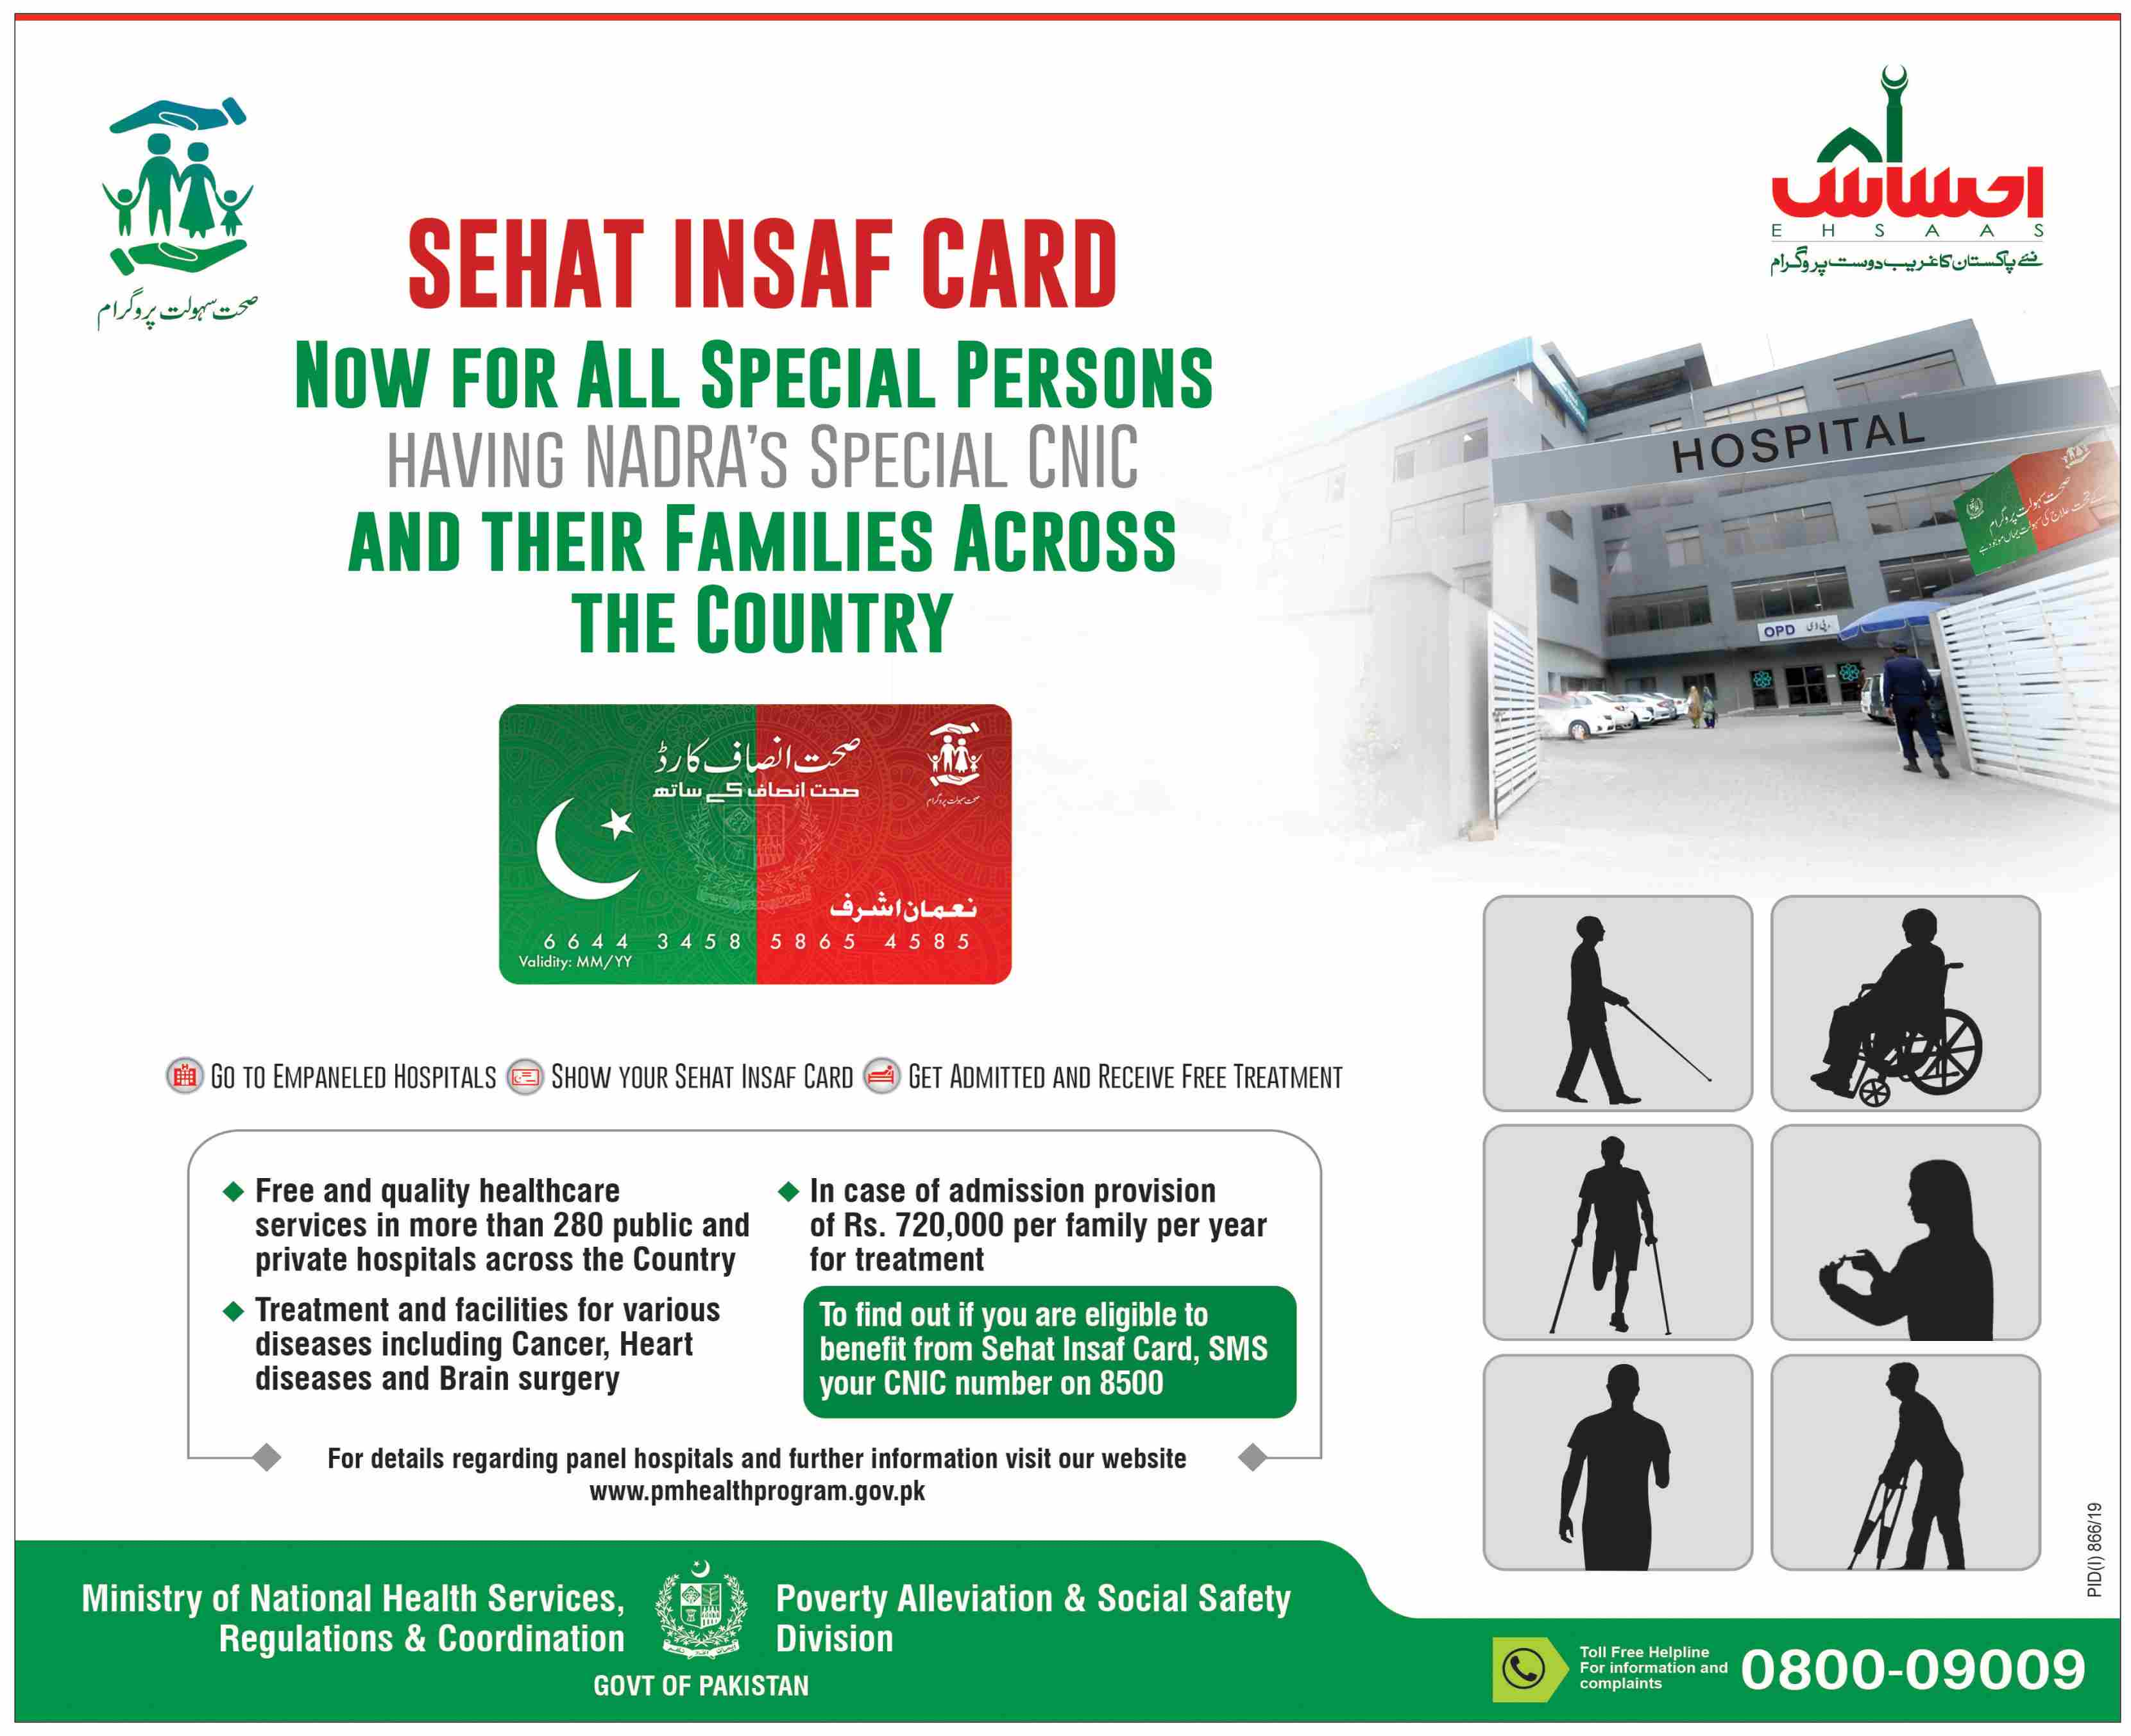 Sehat Insaf Card for Special Persons in Pakistan